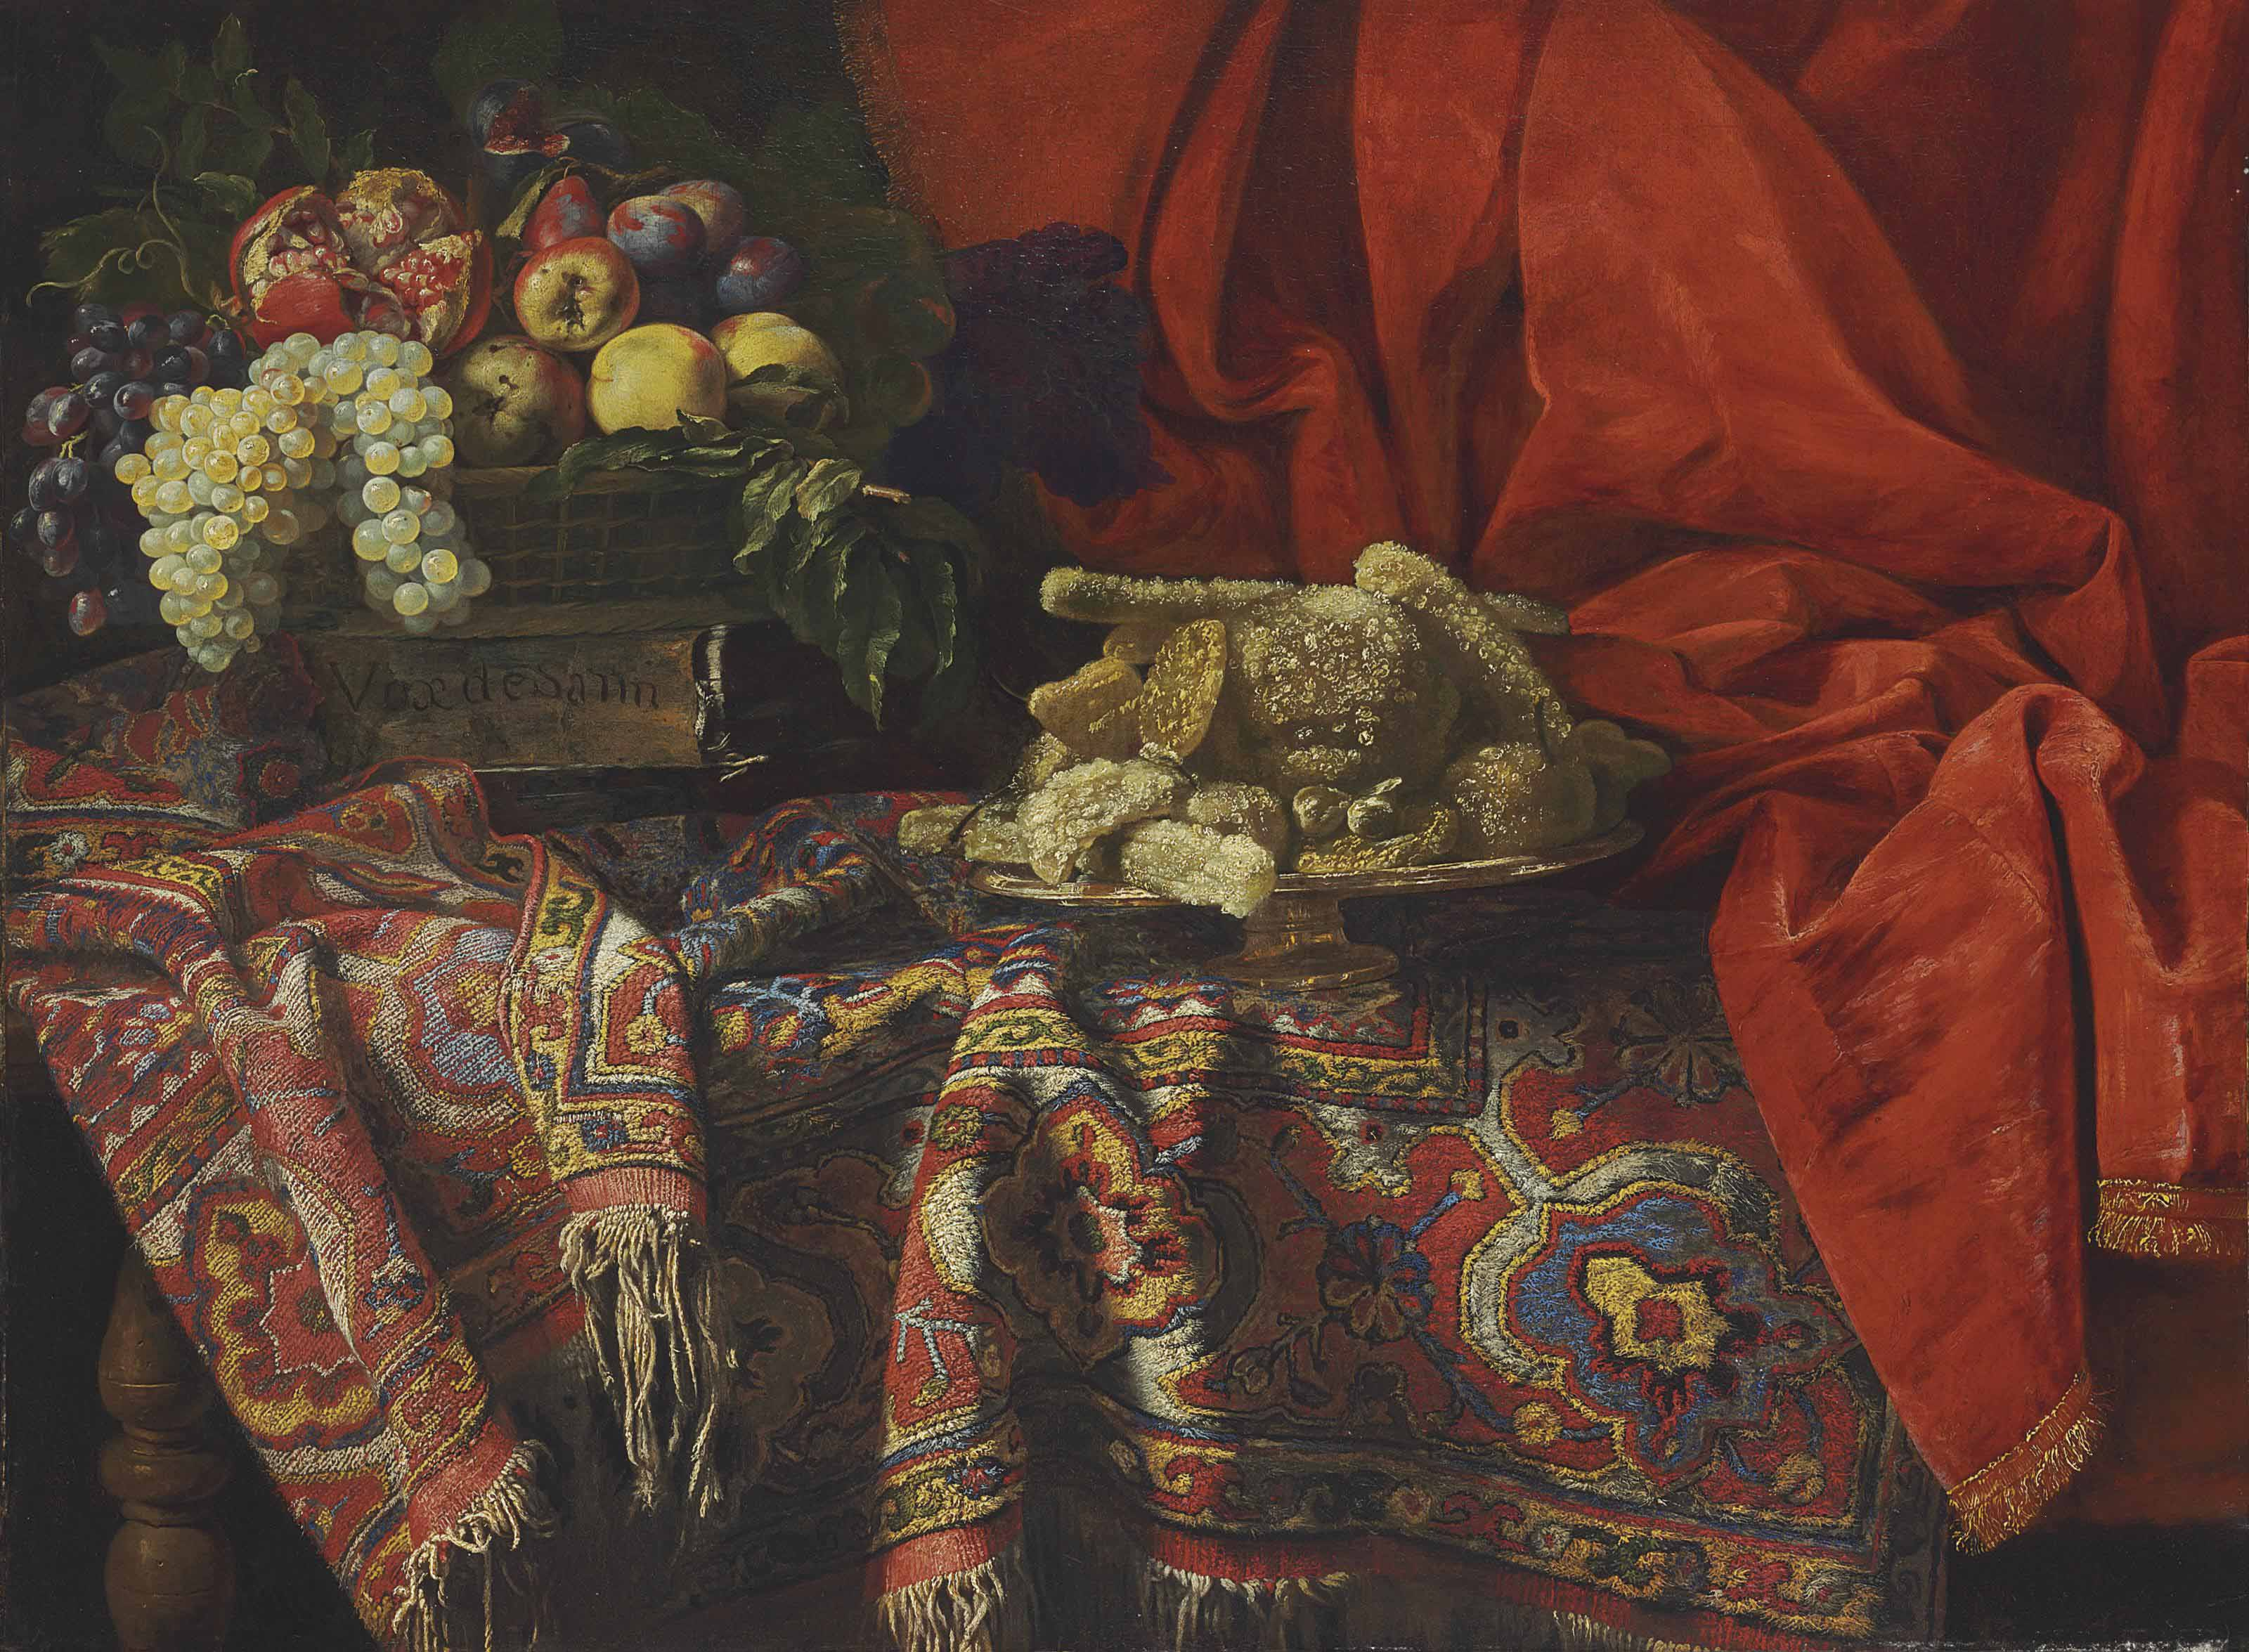 https://www.christies.com/img/LotImages/2014/NYR/2014_NYR_02855_0064_000(francesco_fieravino_il_maltese_grapes_apples_a_pomegranate_and_other_f).jpg